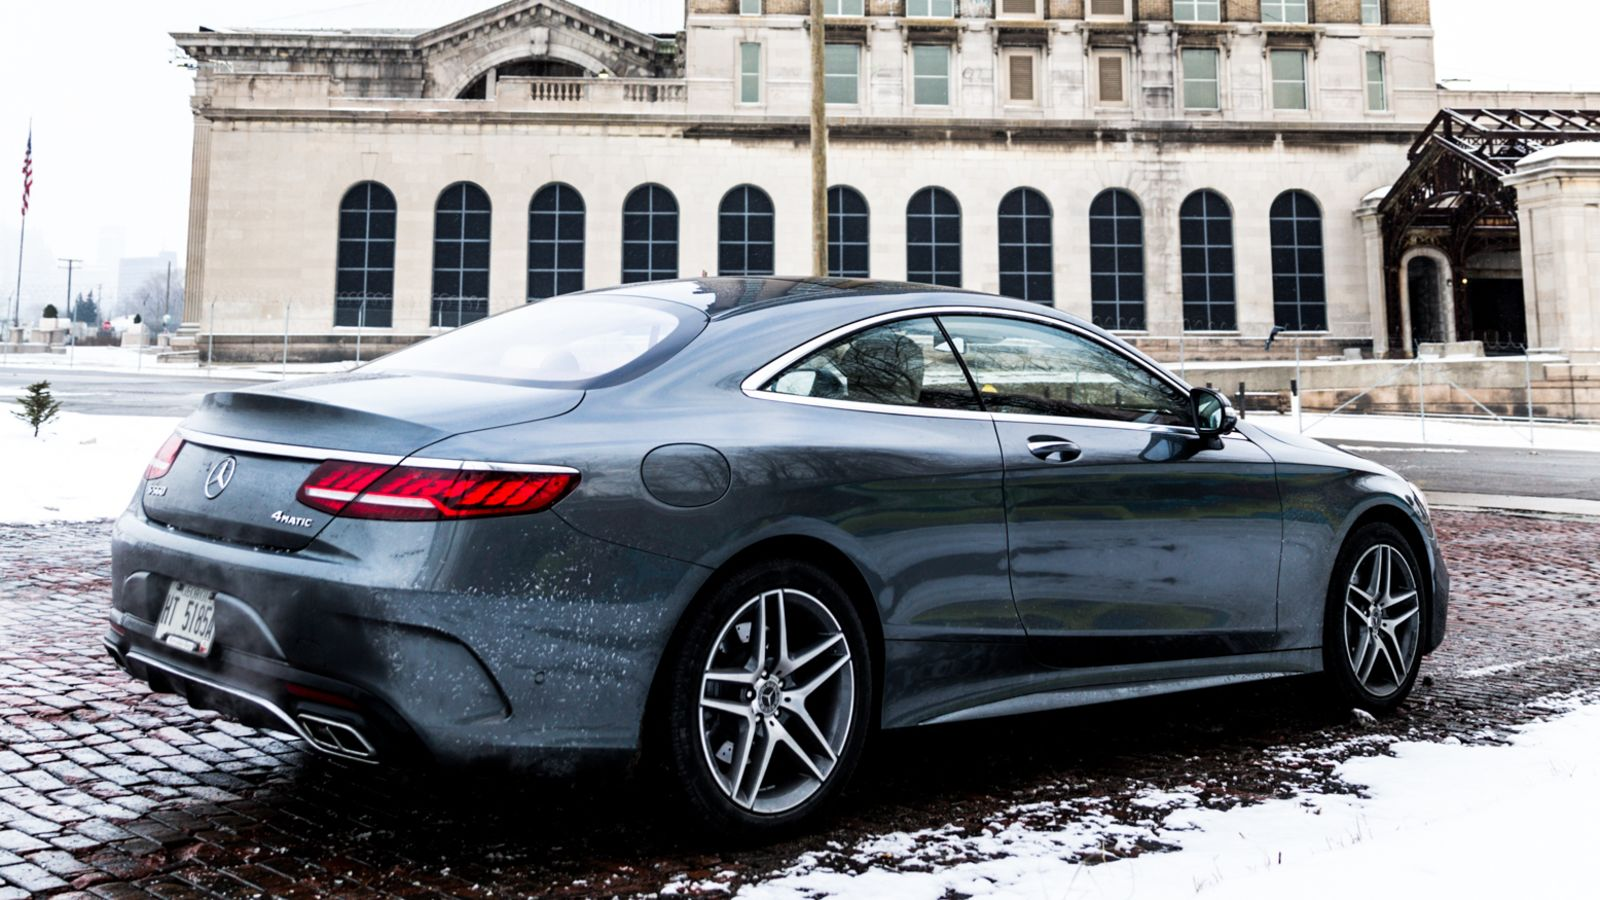 mercedes S class coupe 2018 μέσα και έξω